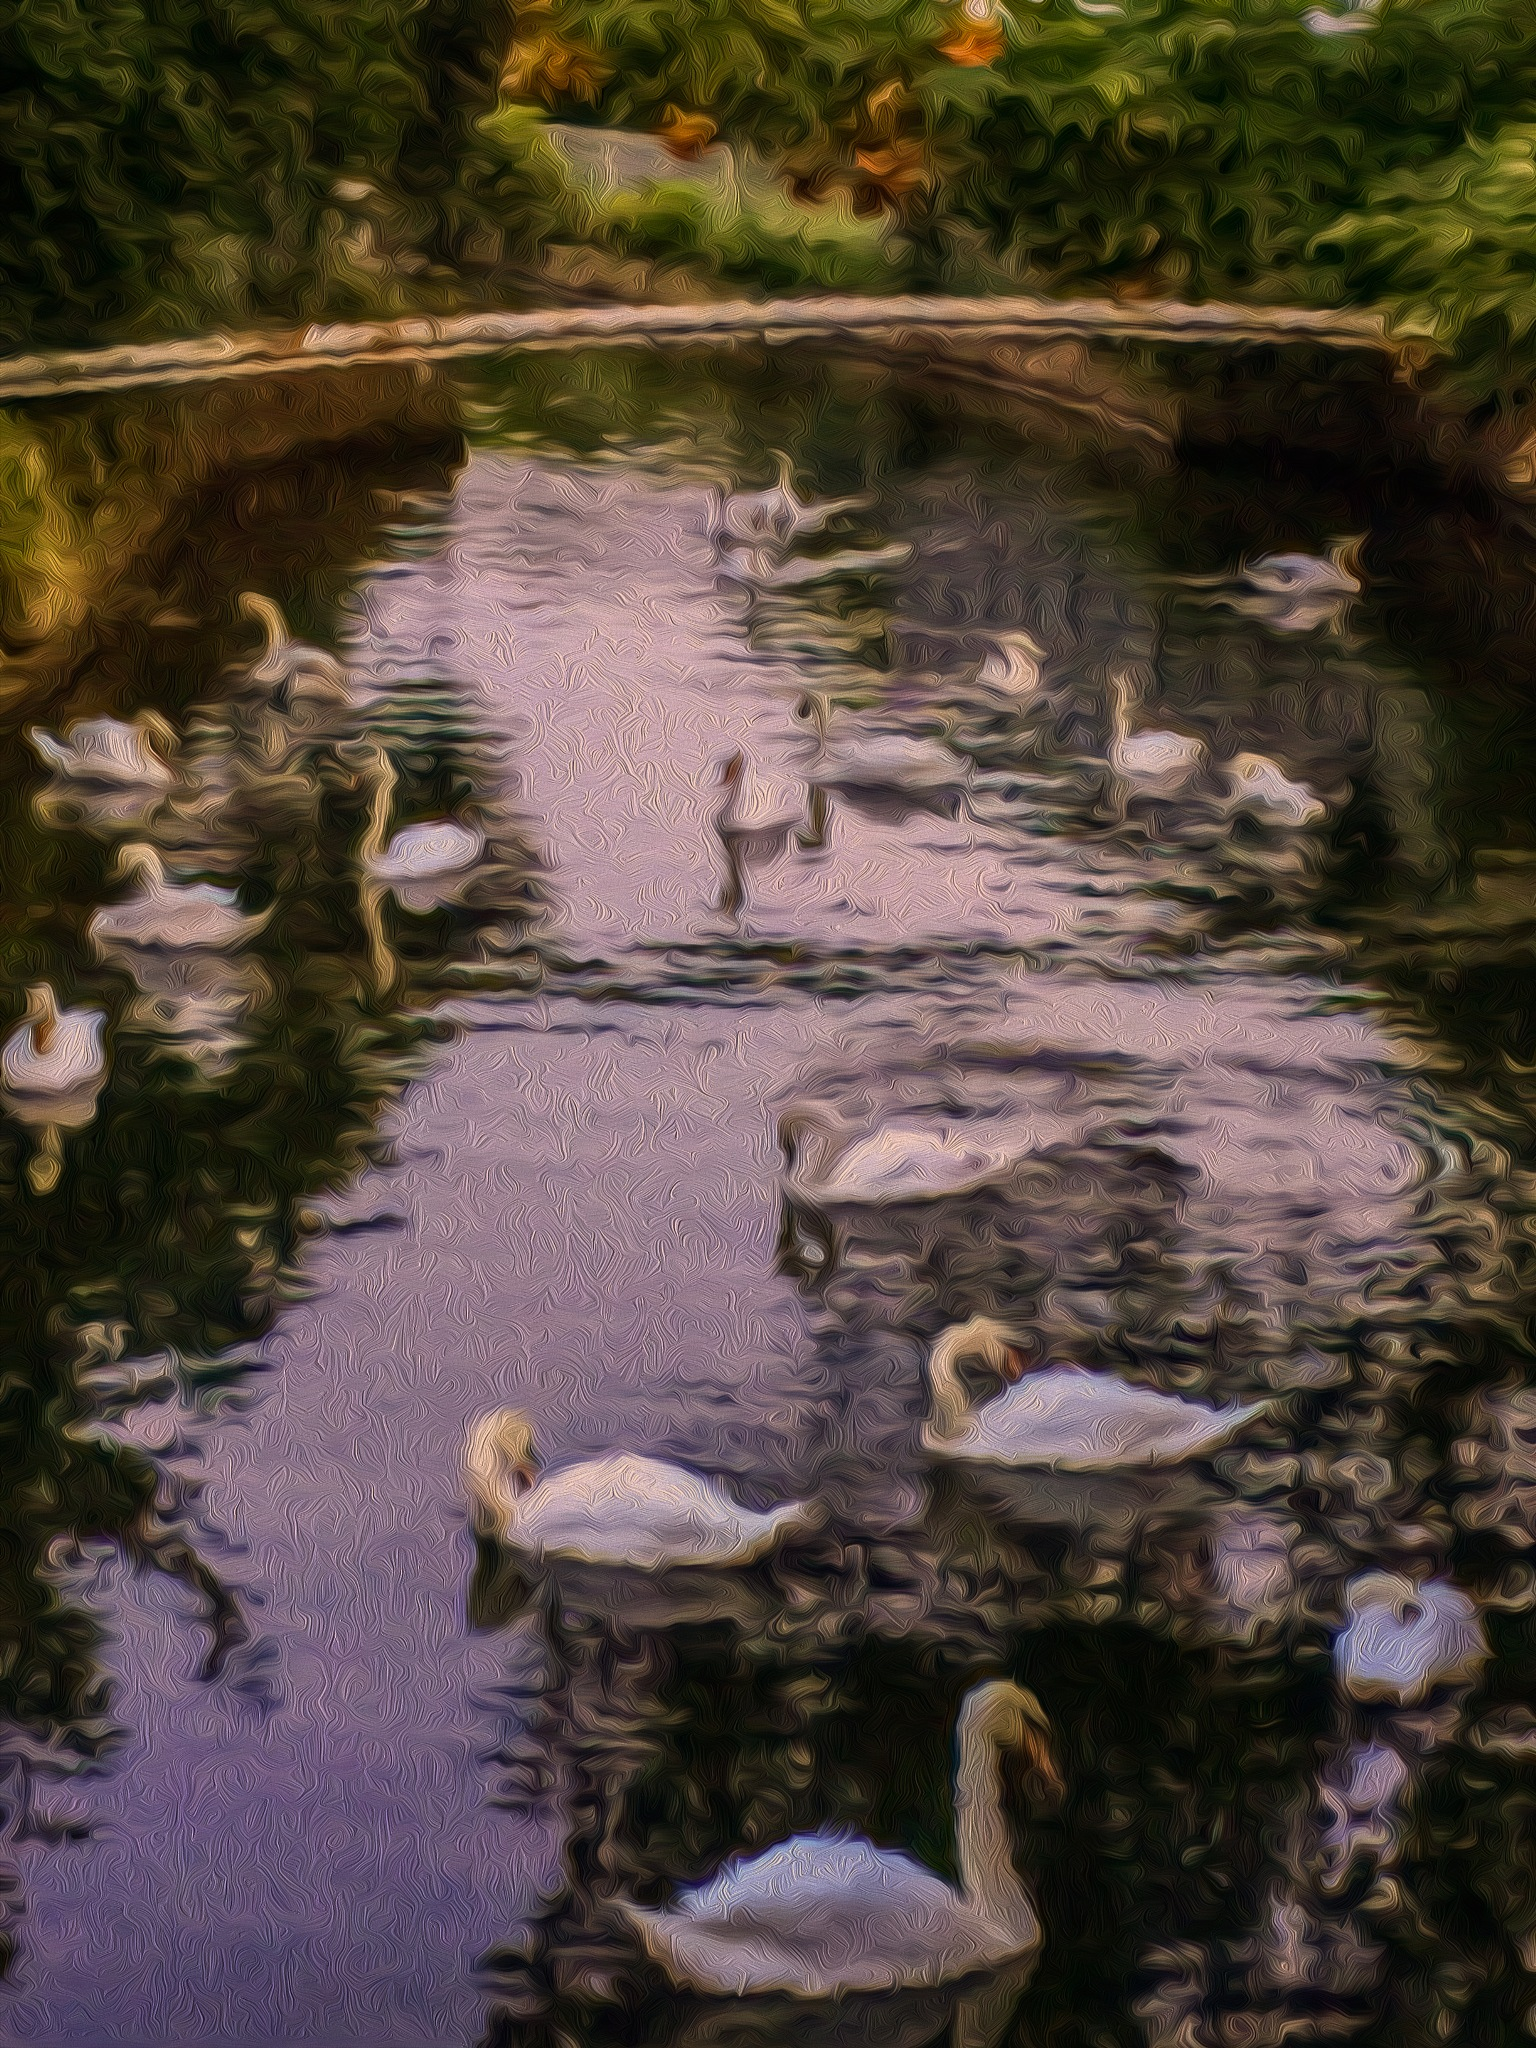 Eastbourne - Swans in a Pond by onasar